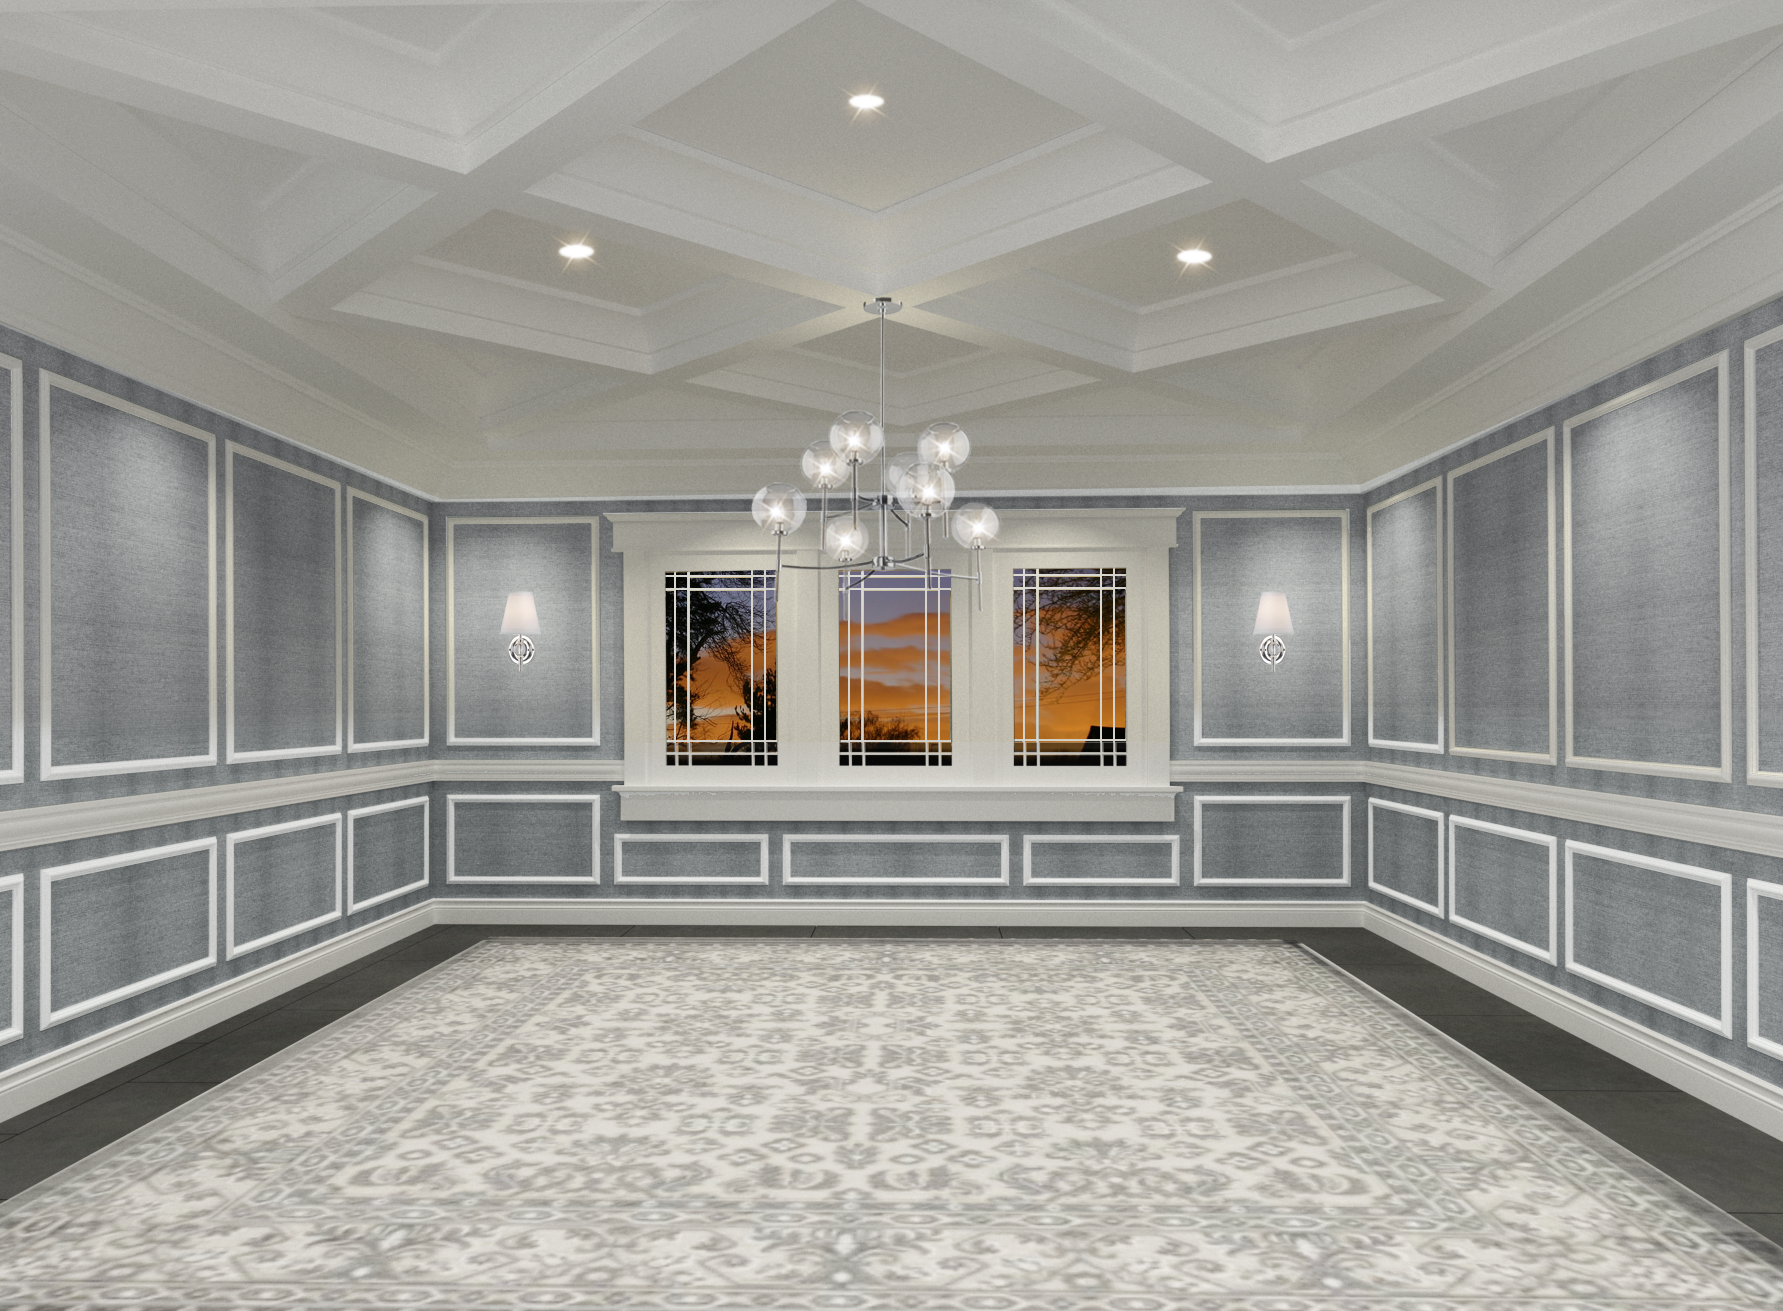 MAPLE_dining room 3.png